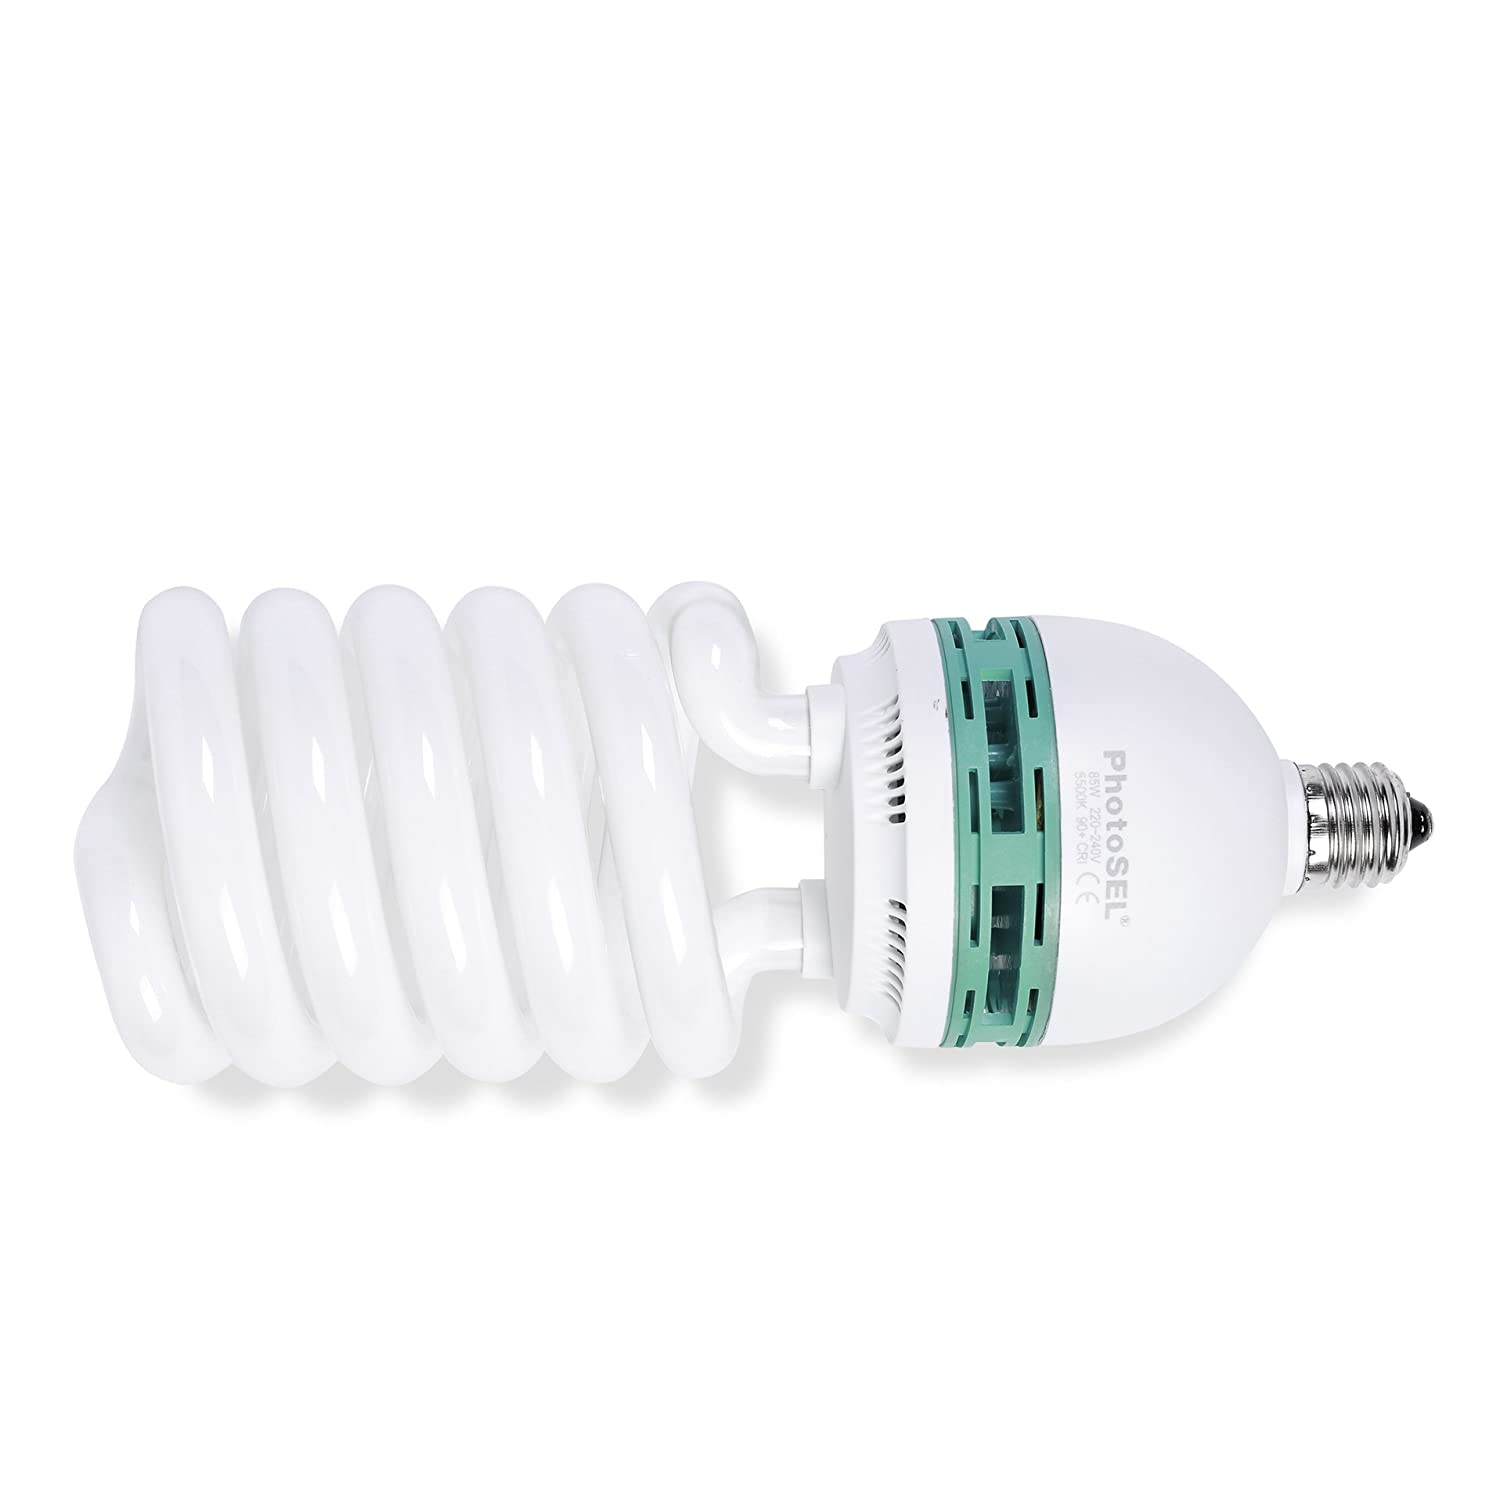 broken lamps light bulb compact fluorescent bulbs cfl recycle recycling